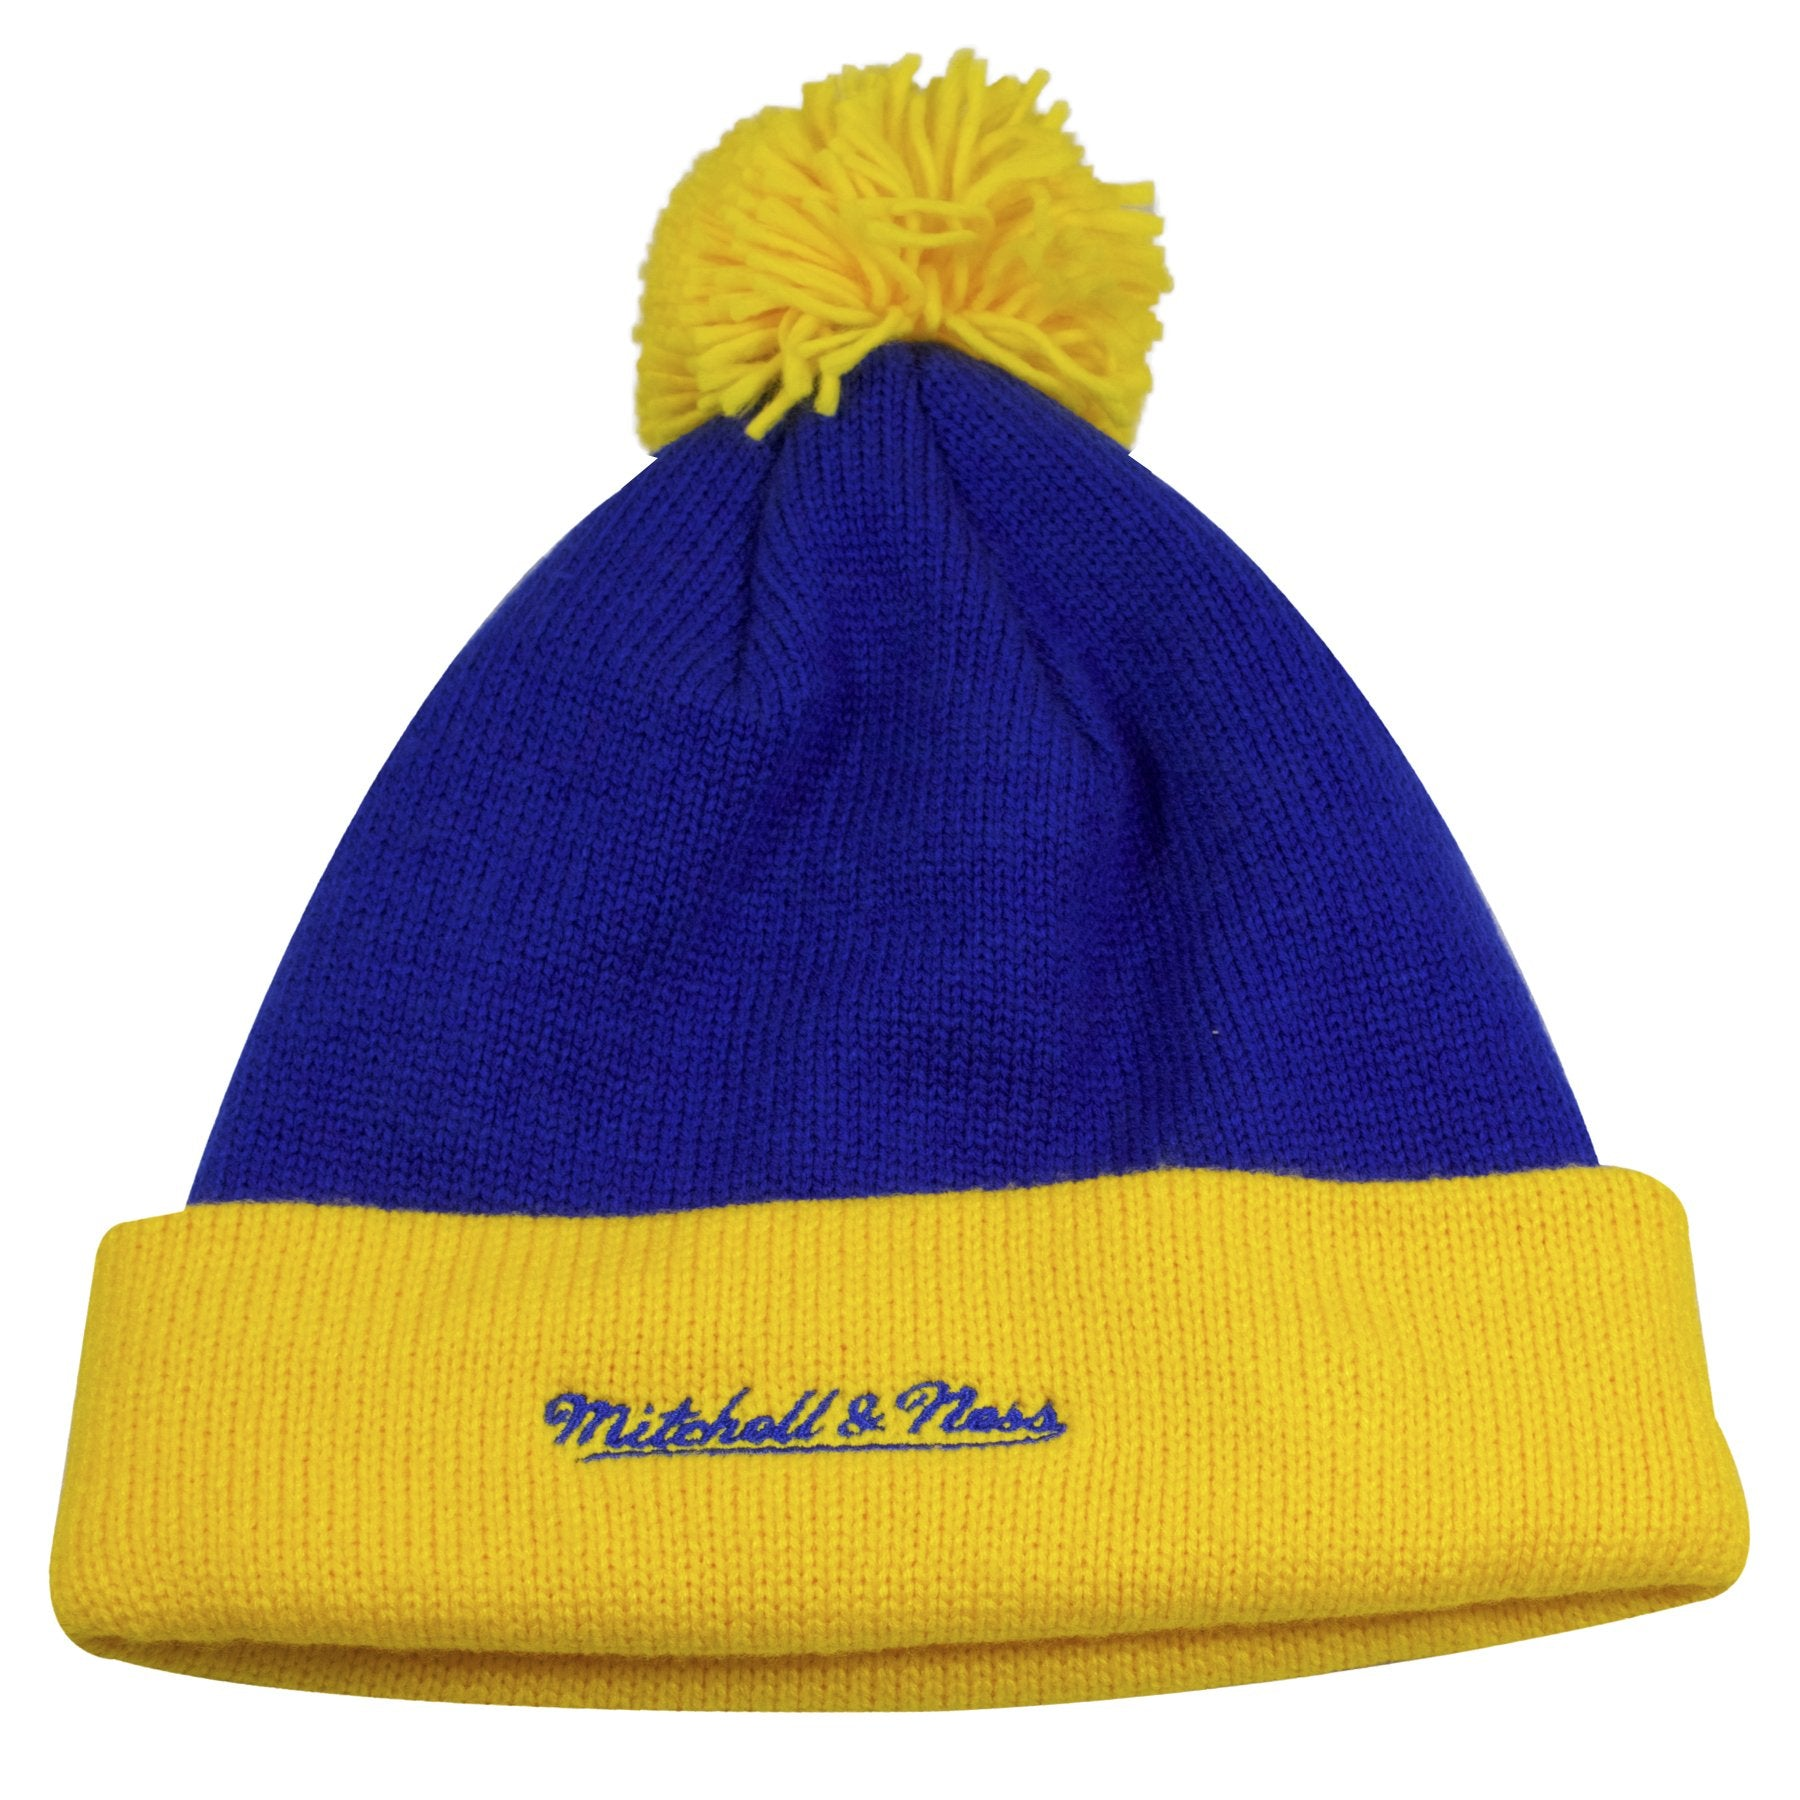 f63c6f4fc74 ... on the back denver nuggets vintage blue winter beanie is the mitchell  and ness logo embroidered